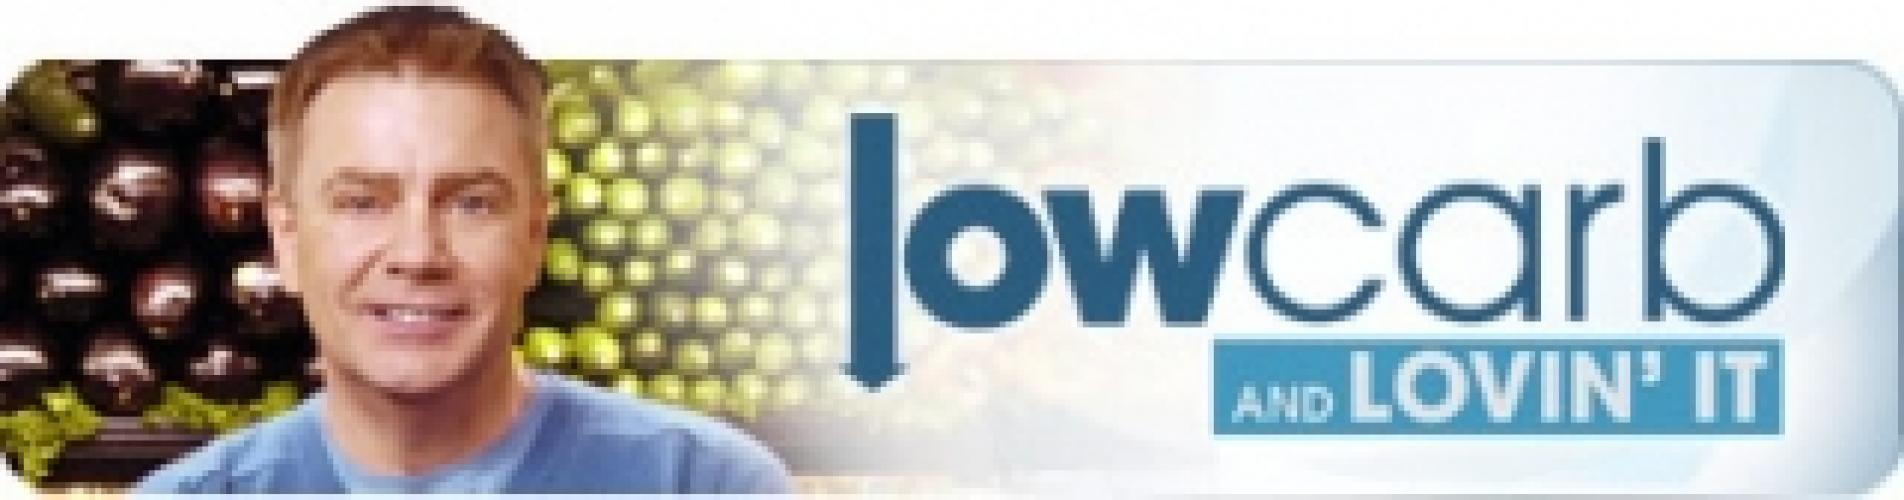 Low Carb and Lovin' it next episode air date poster